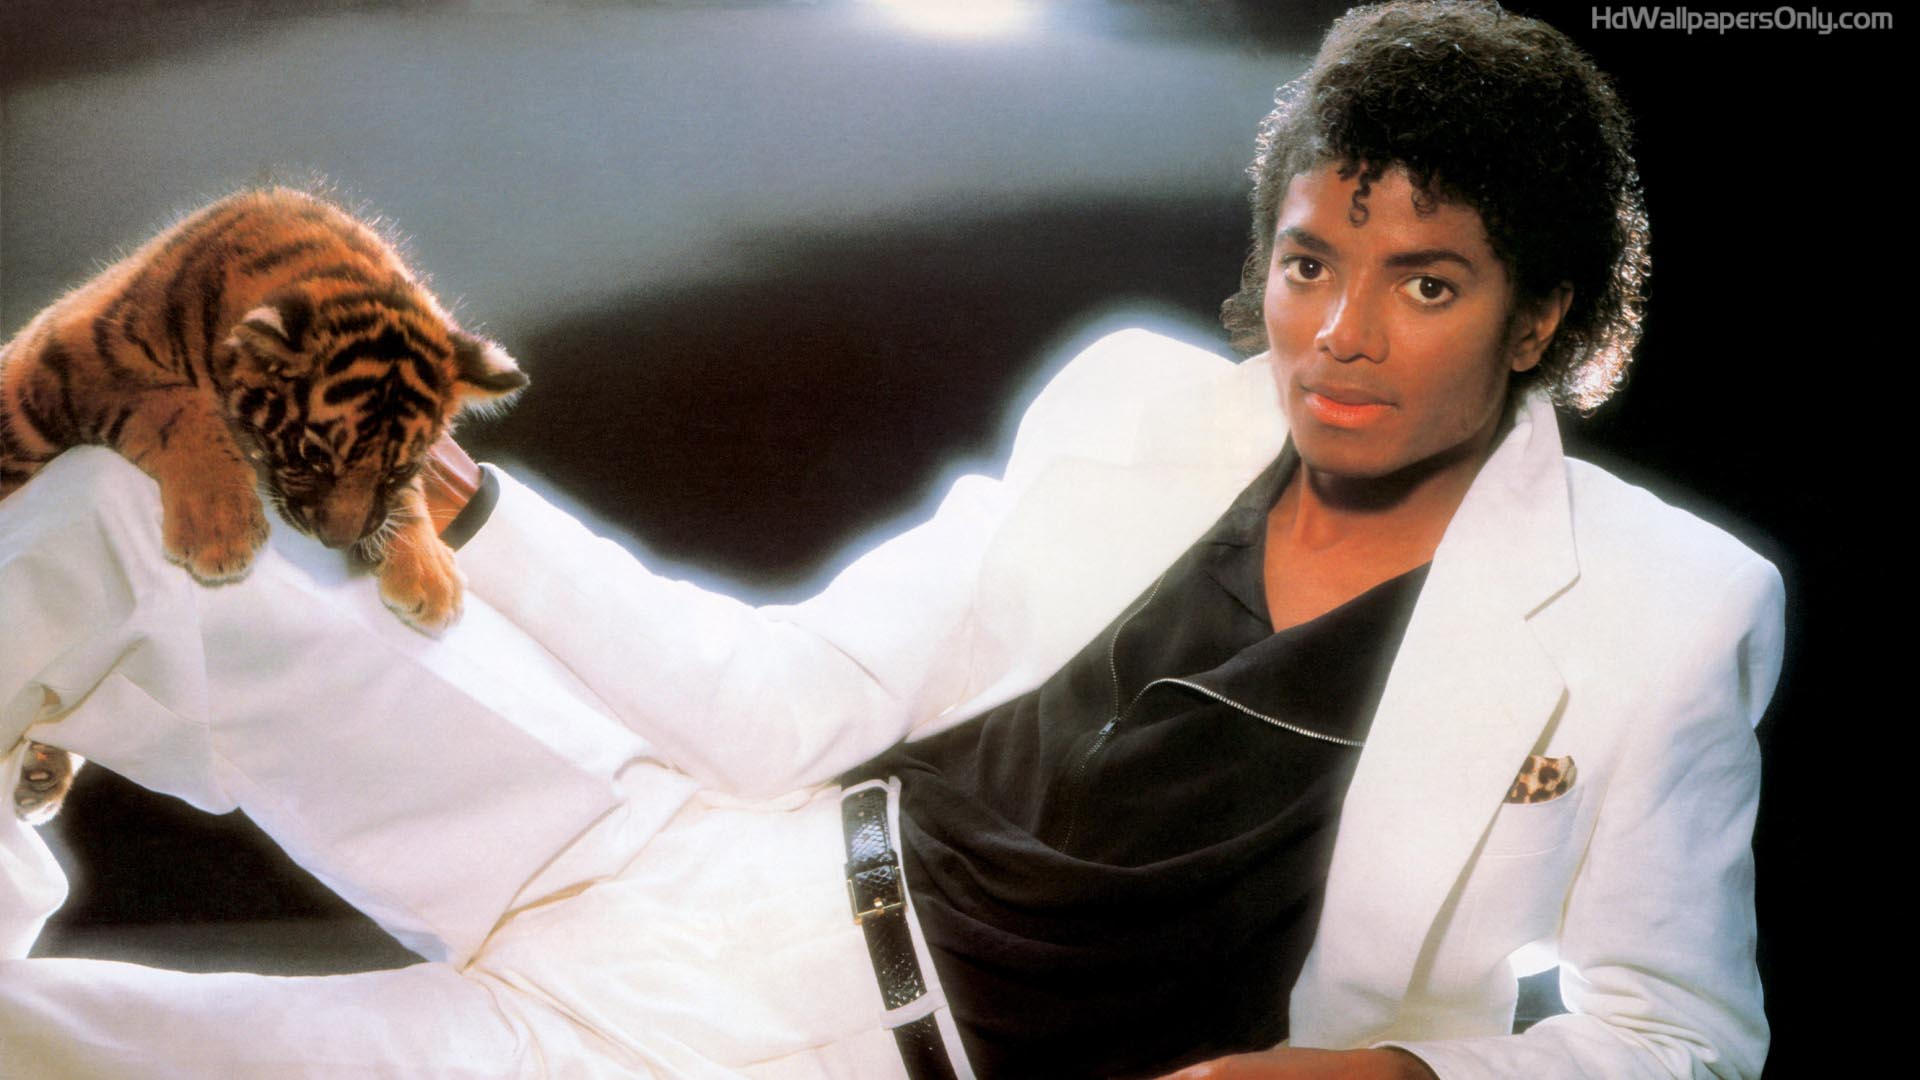 Michael Jackson - Thriller - Download Music Video Clip from VOB ...